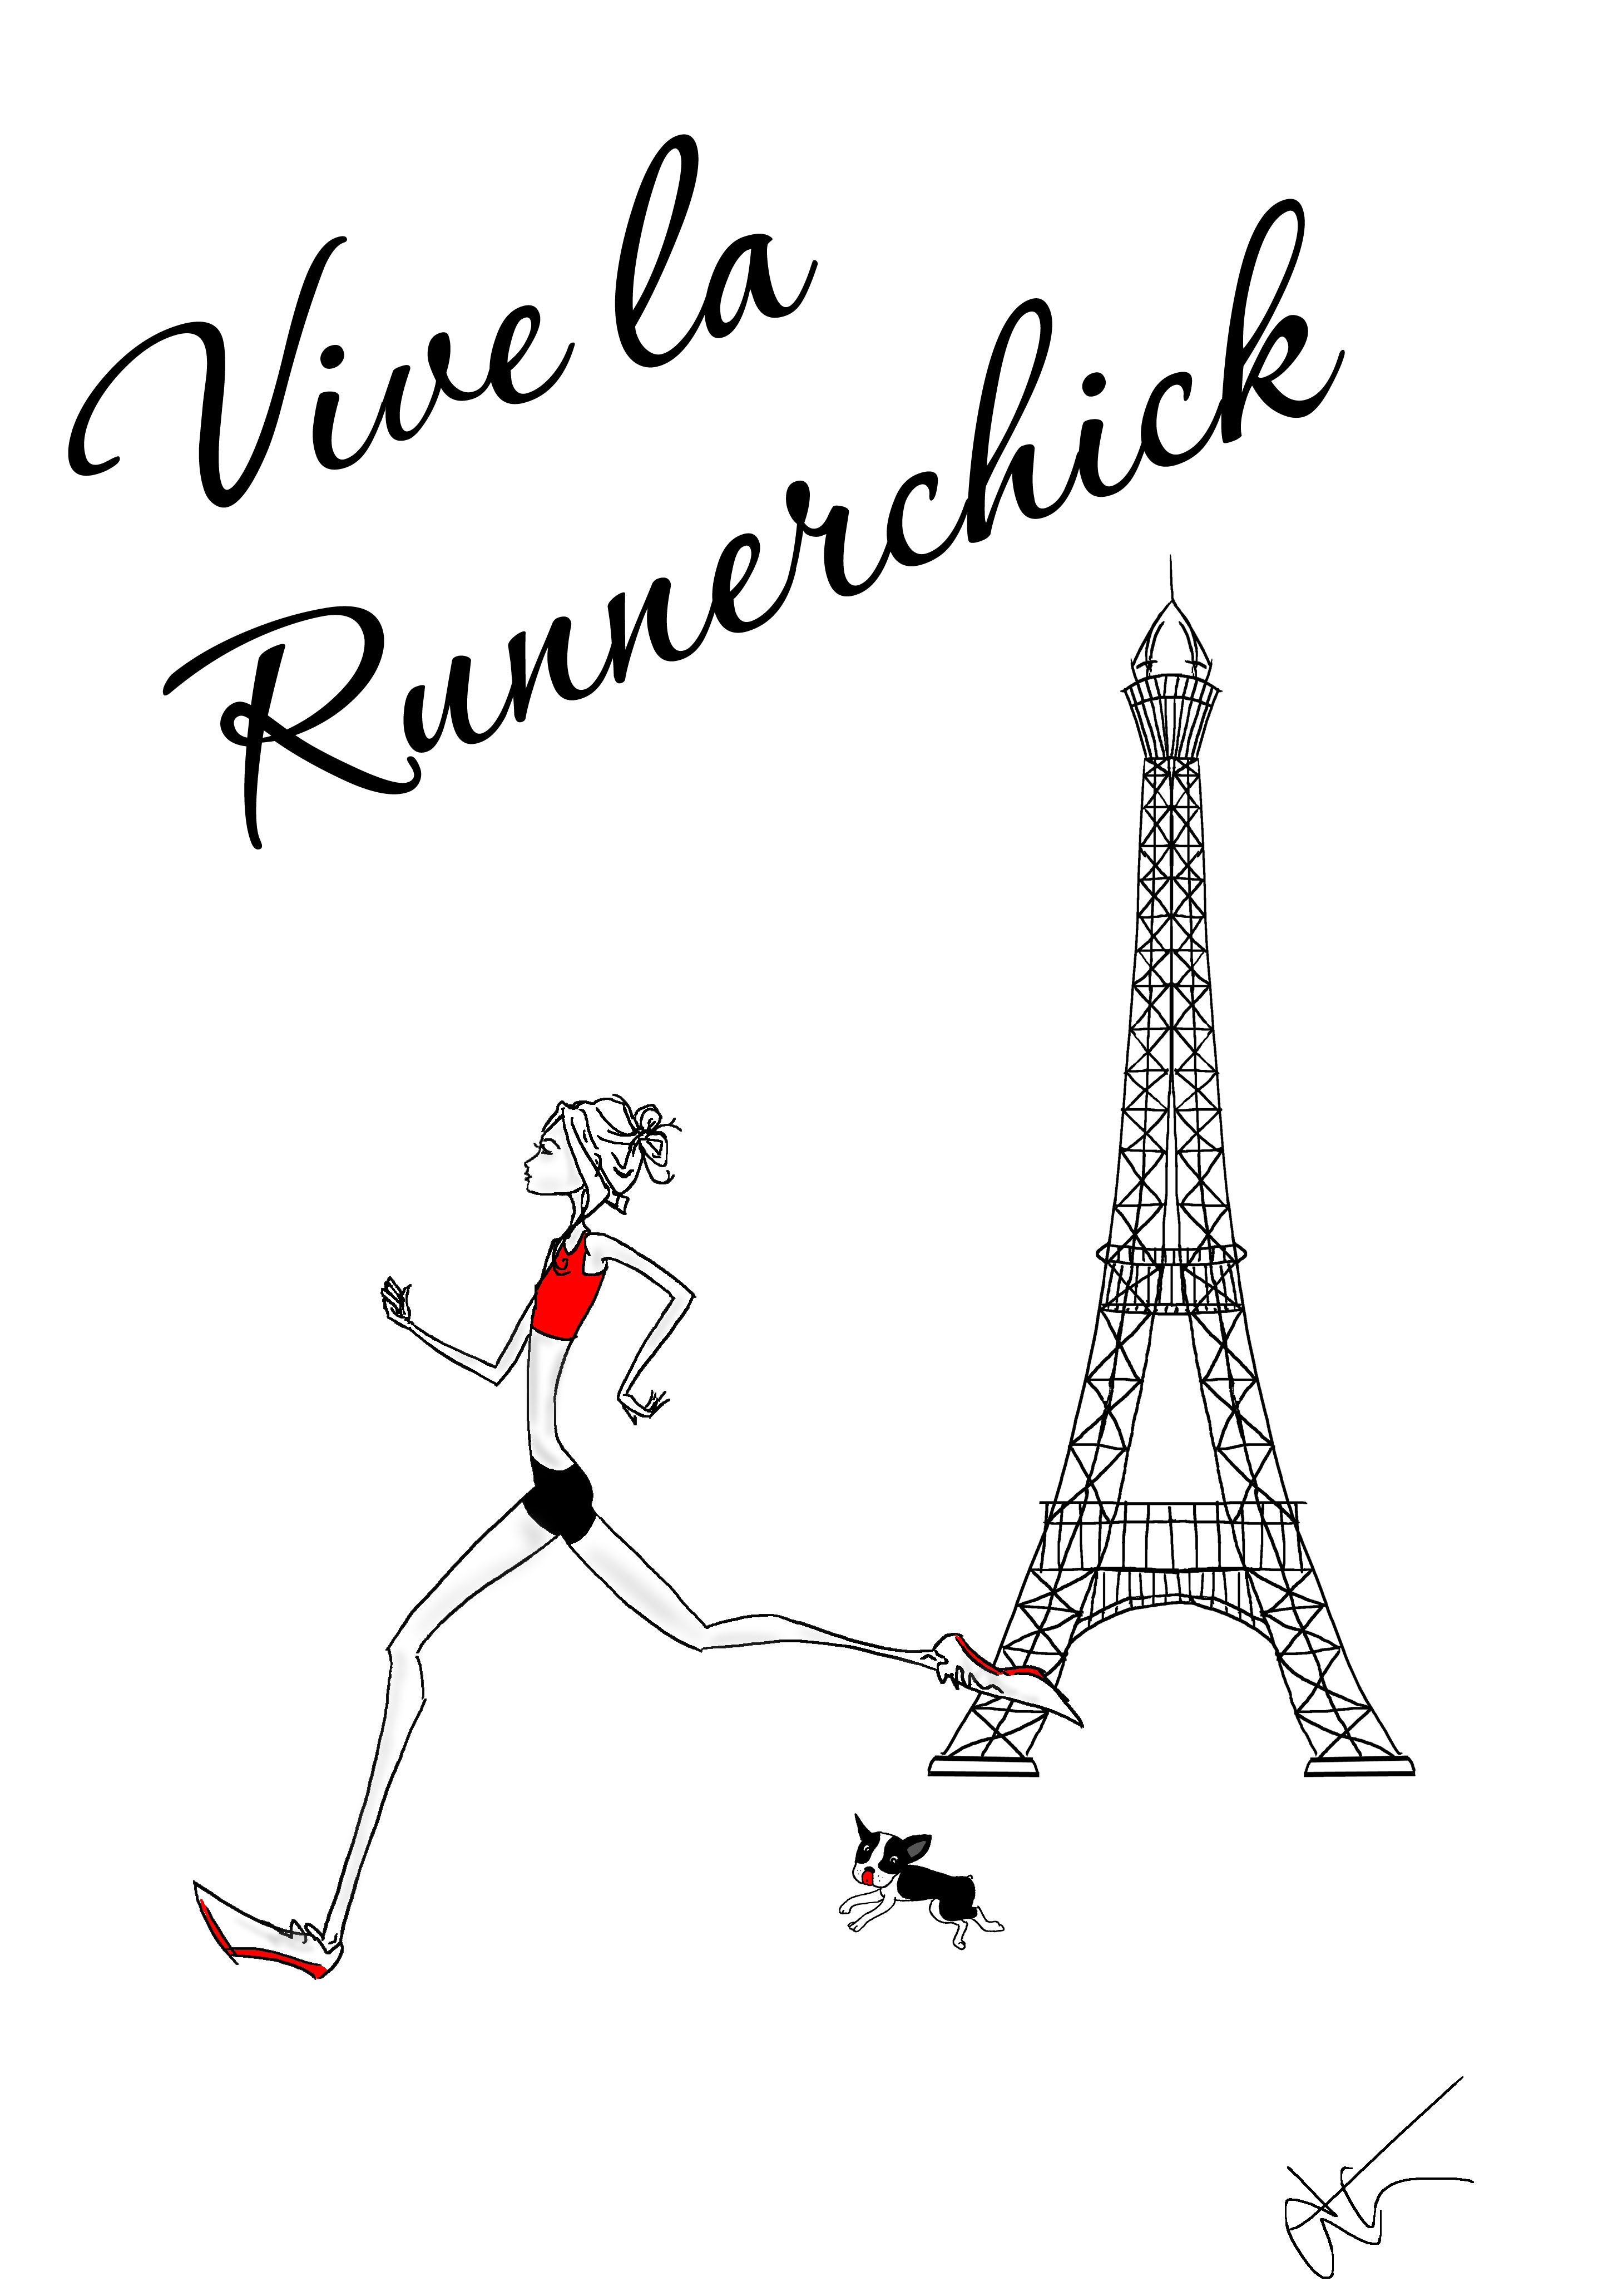 vive la runnerchick